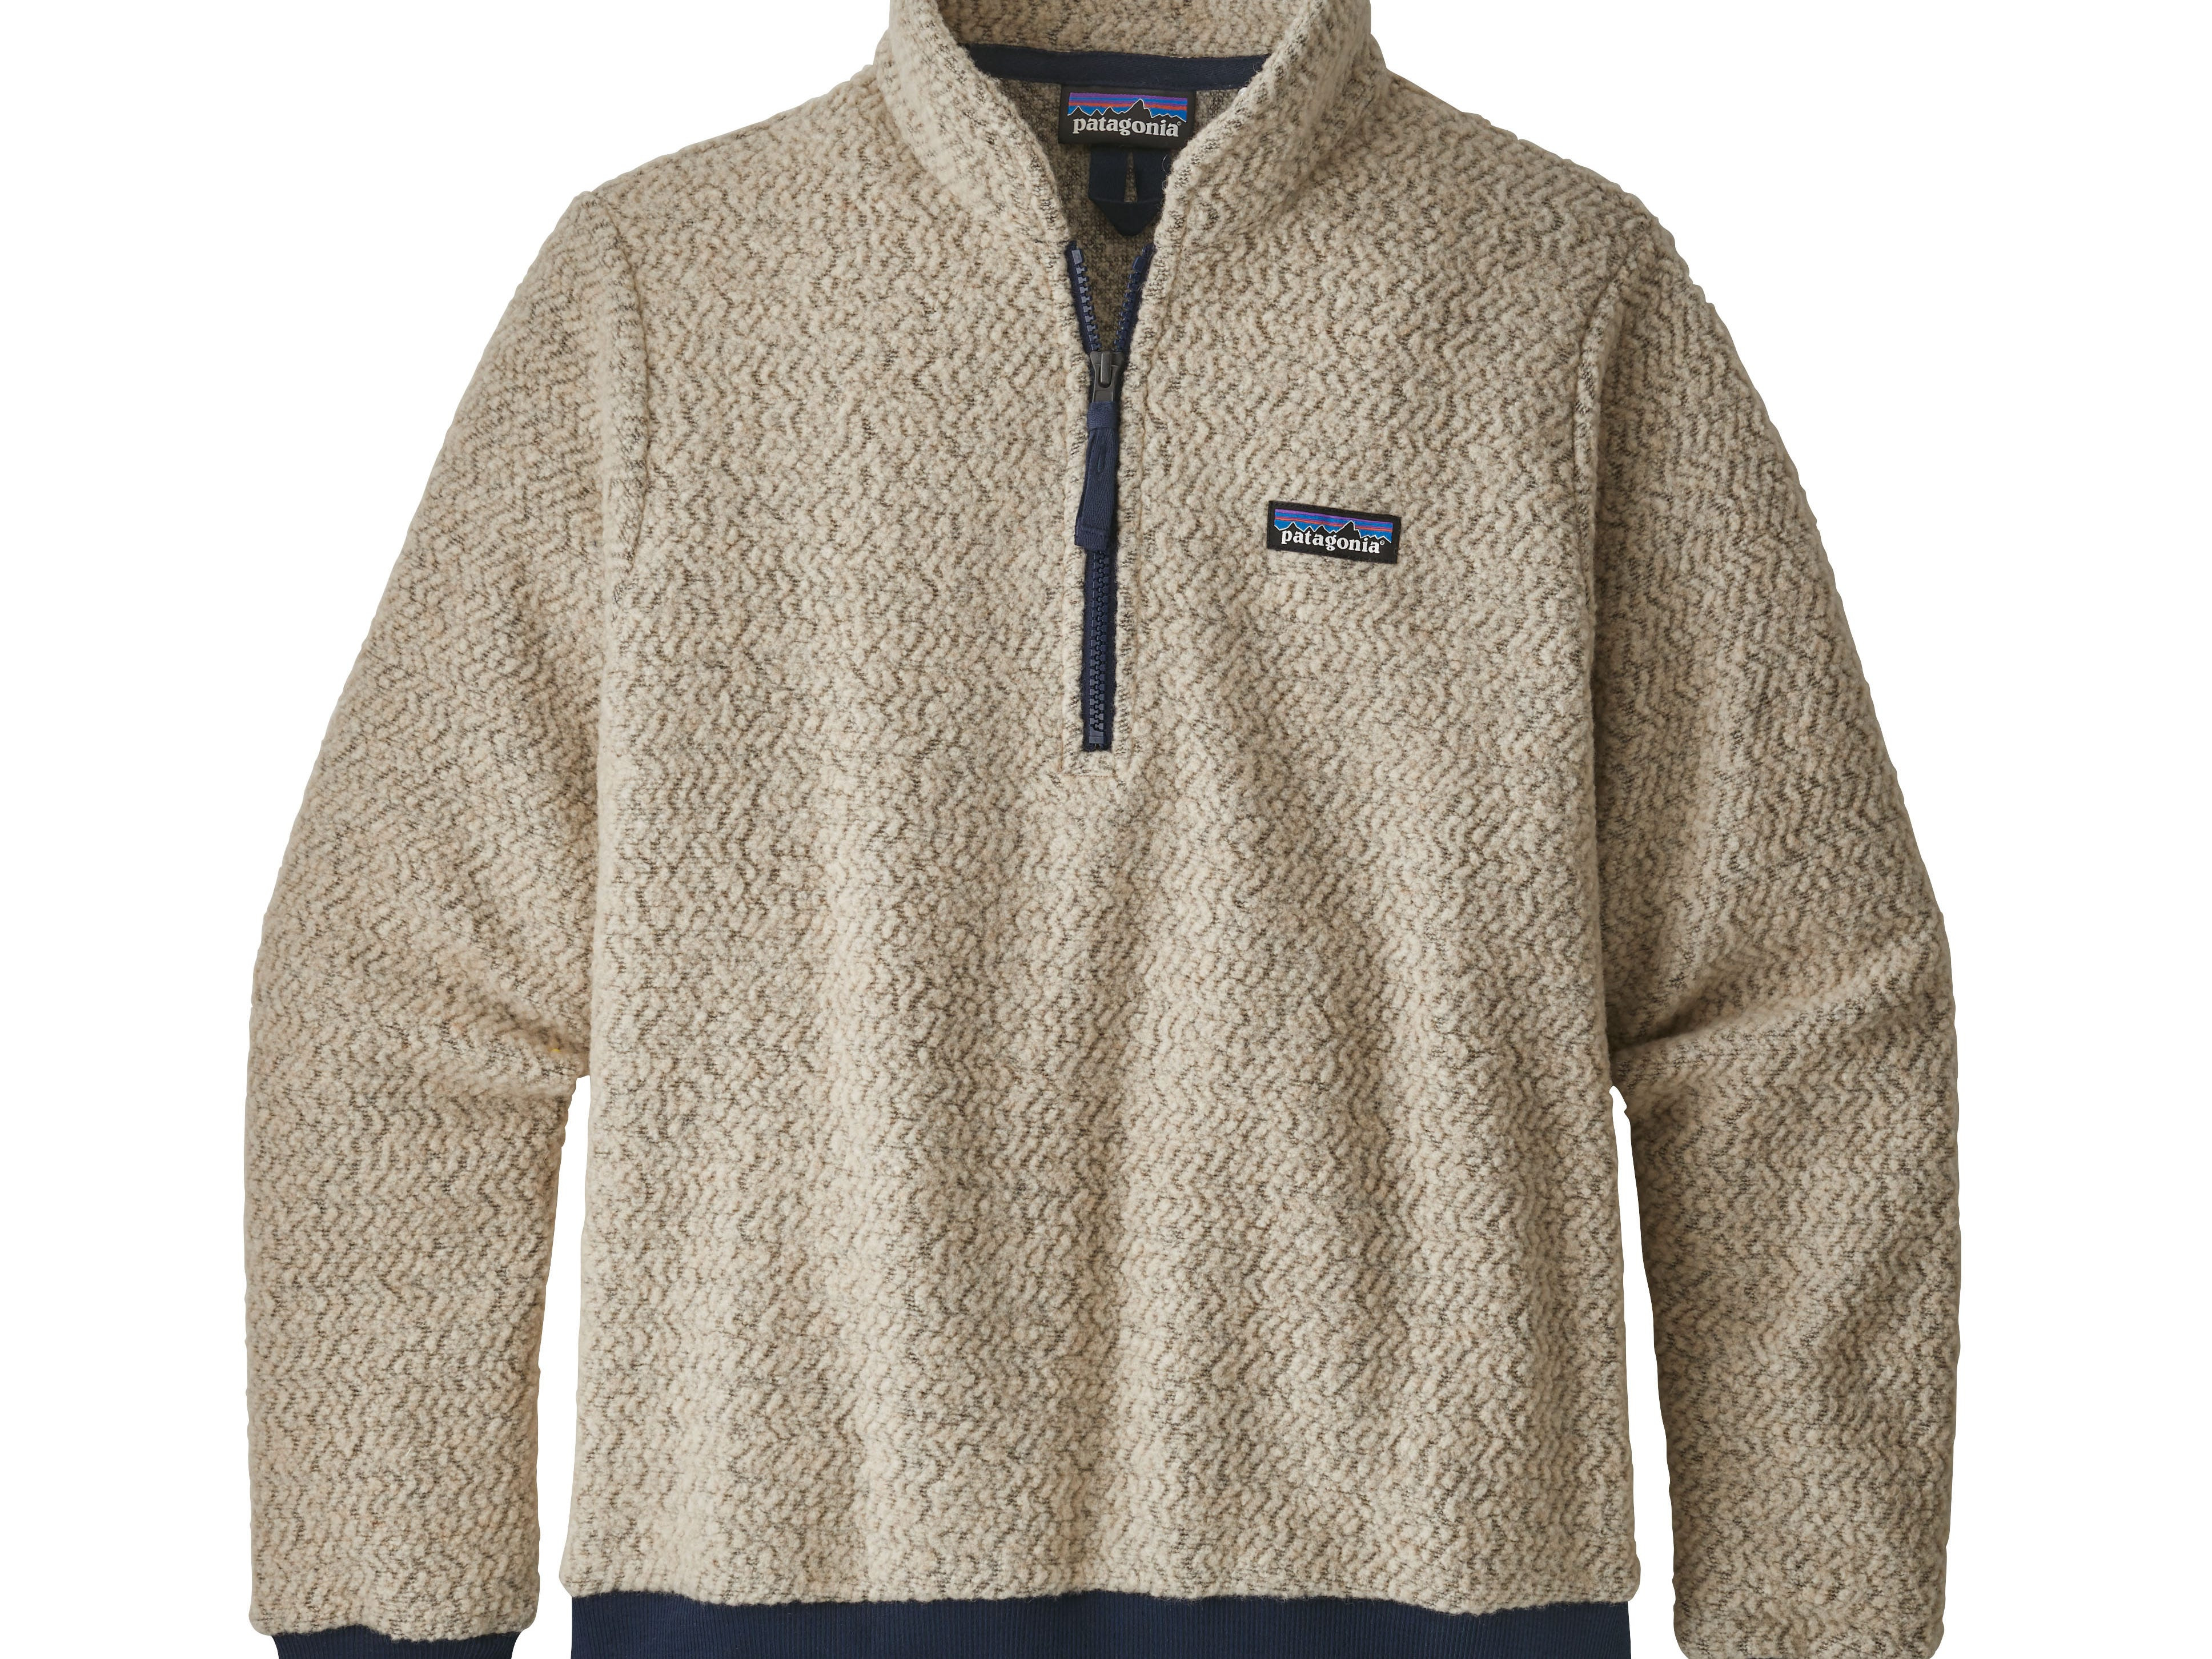 """Outdoor apparel company Patagonia long has been at the leading edge of efforts to steer the clothing industry toward more sustainable products, and it has """"cause no unneccessary harm"""" as part of its mission statement. Here, the brand's new Women's Woolyester Fleece Pullover, which is made from a recycled wool/polyester/nylon fabric blend and Fair Trade Certified sewn. Price: $139."""